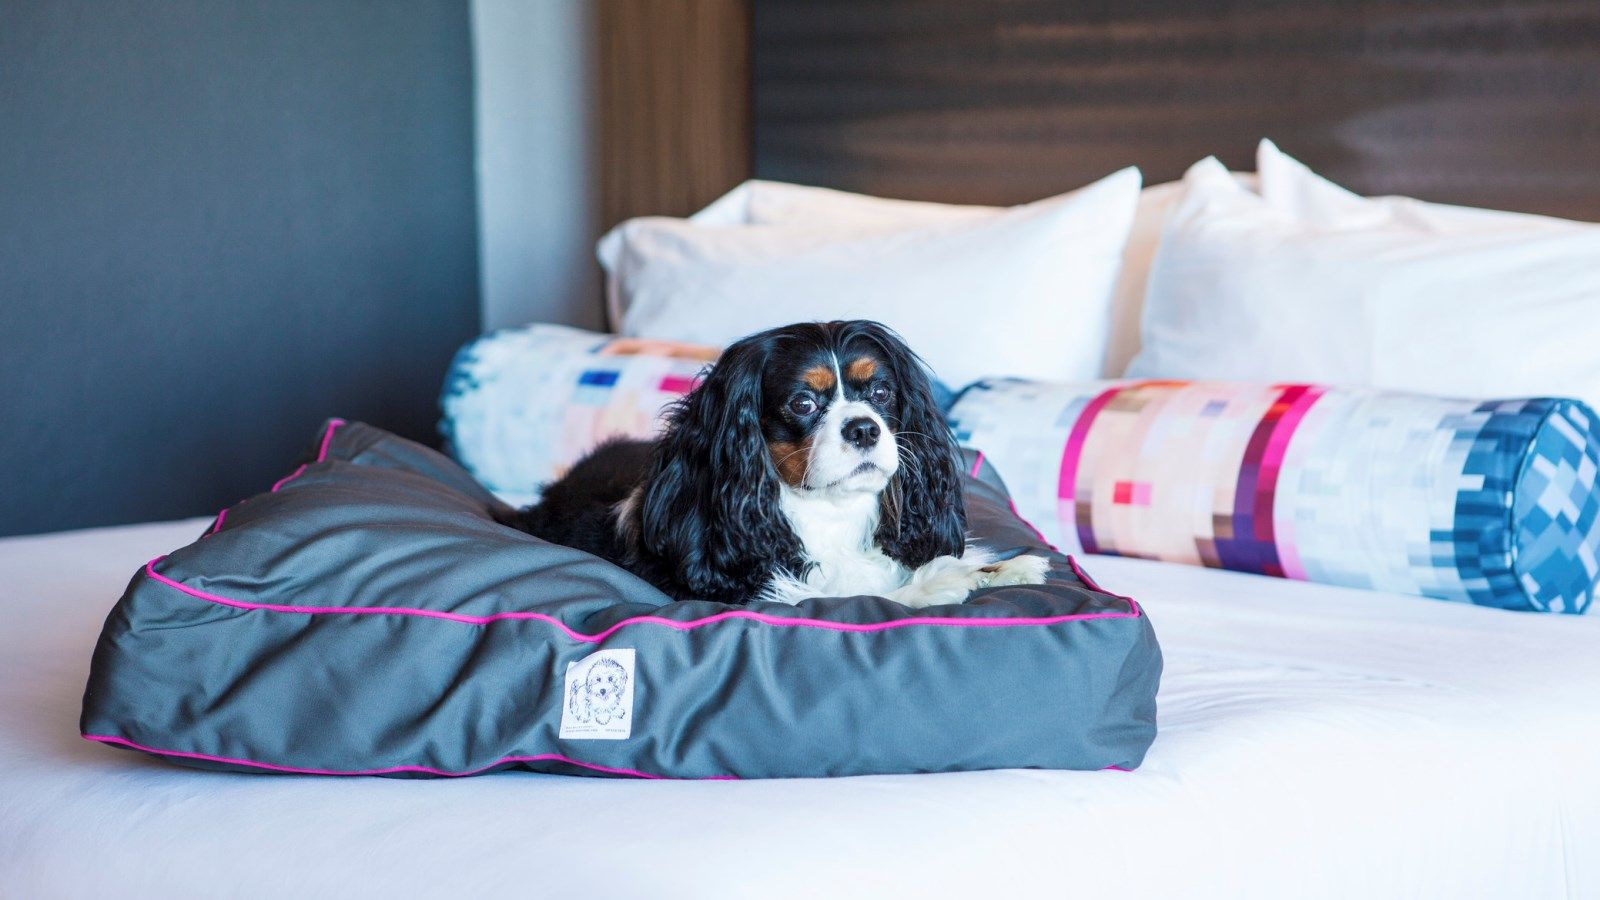 Pet Friendly Hotels in Miami